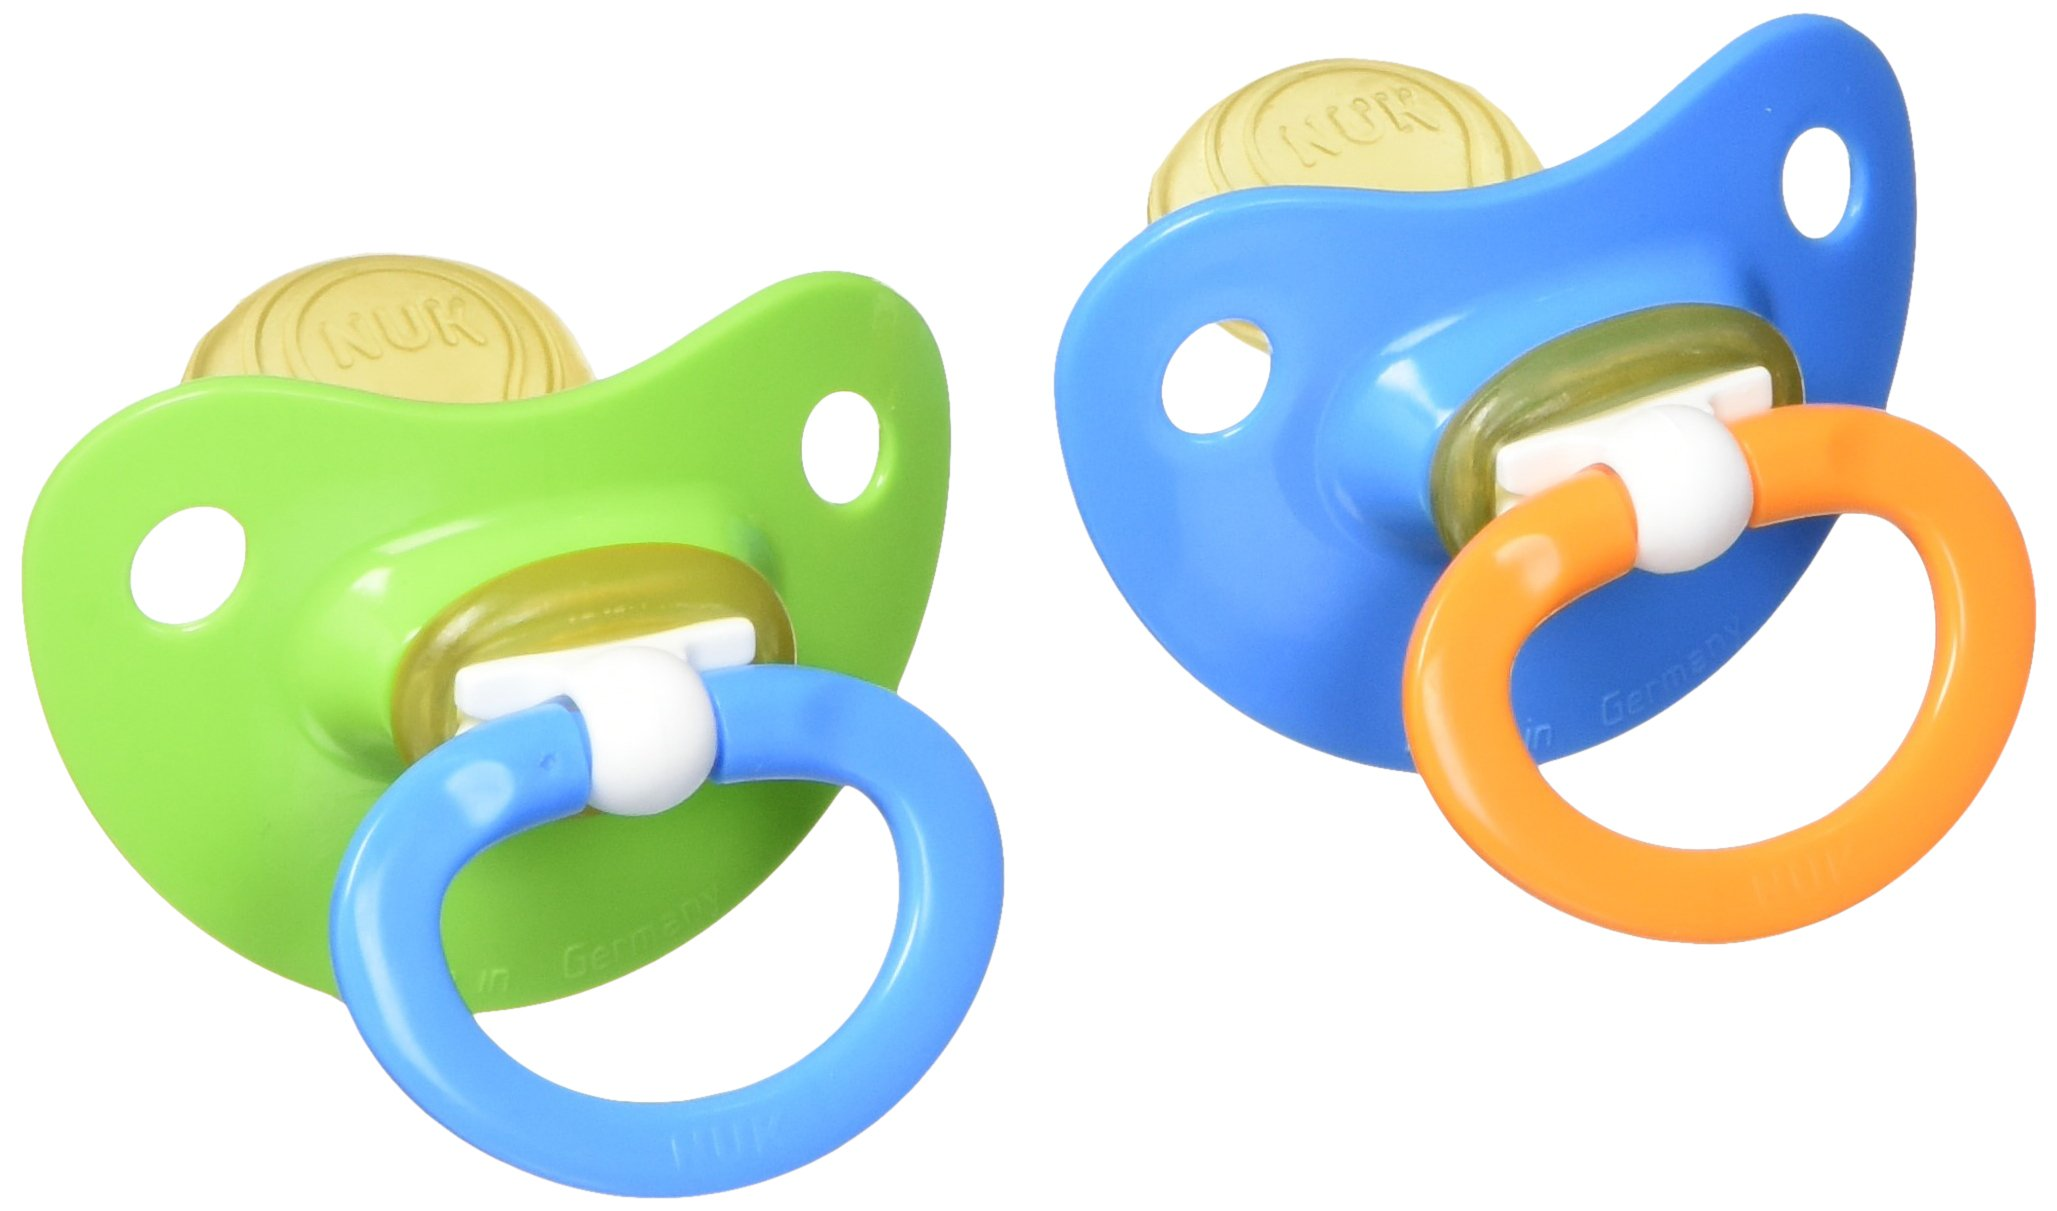 Amazon.com : NUK Juicy Orthodontic Latex Pacifier, Size 3, 6 ...